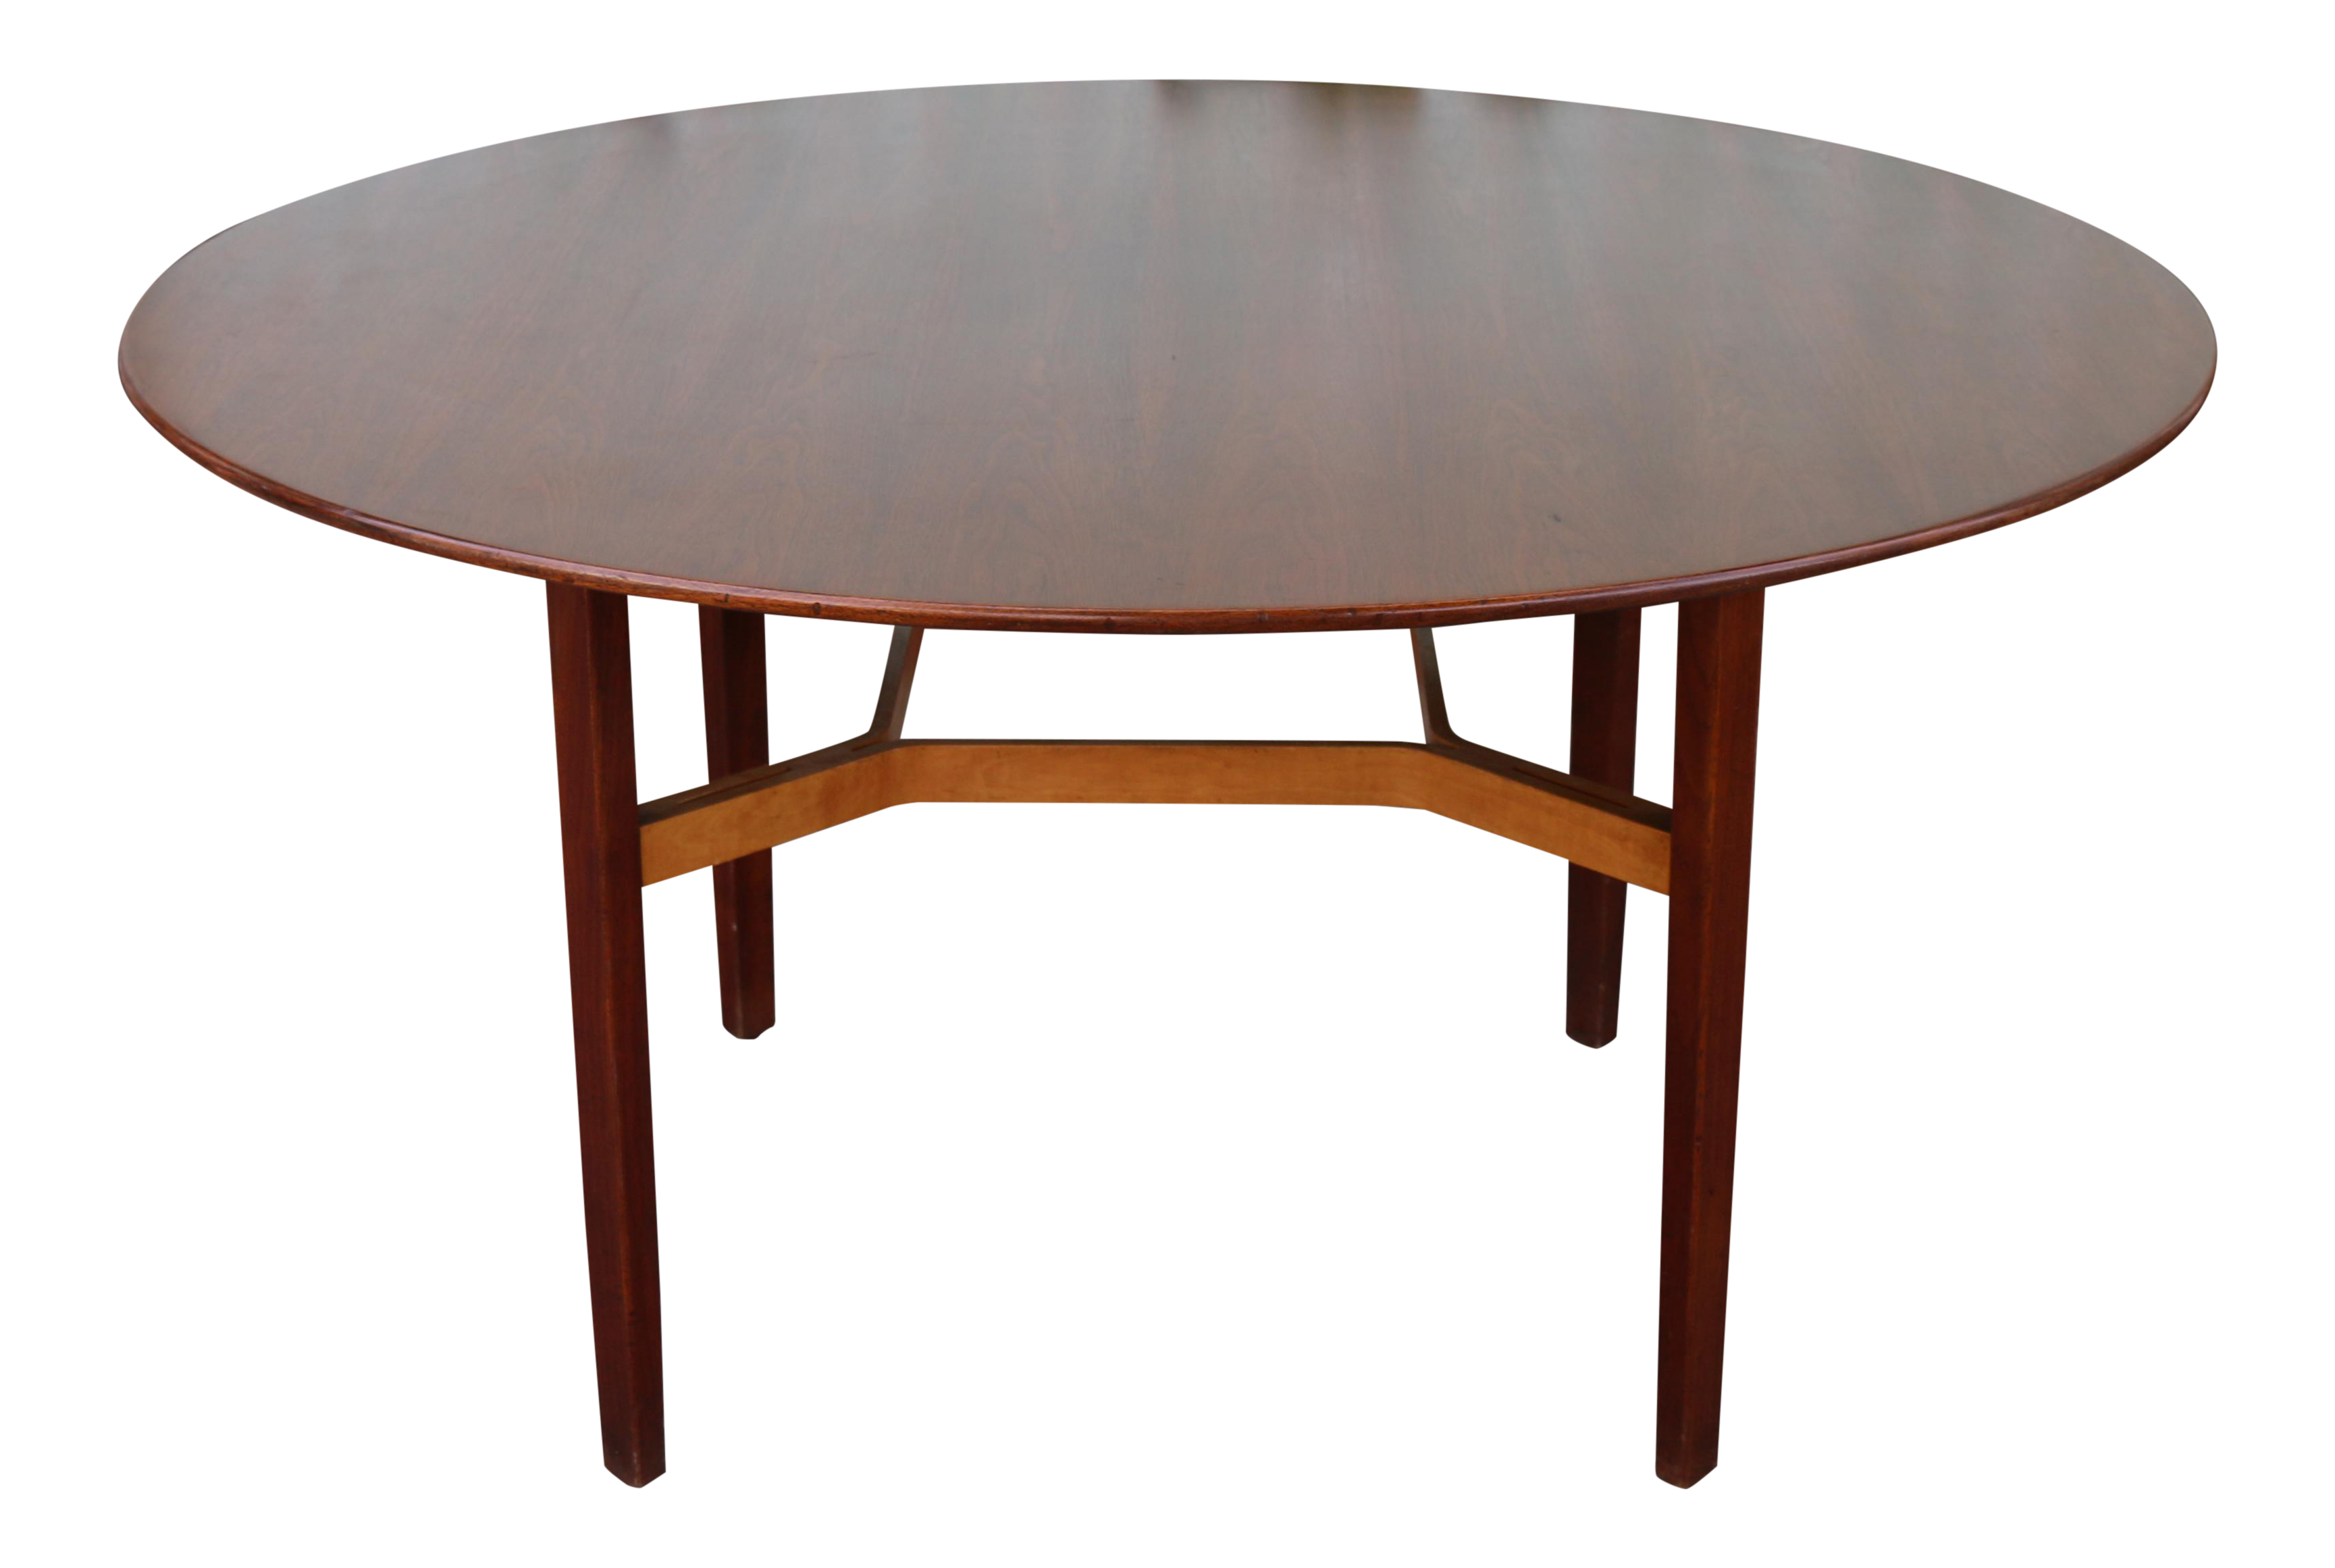 Charmant Walnut Round Dining Table By Lewis Butler For Knoll